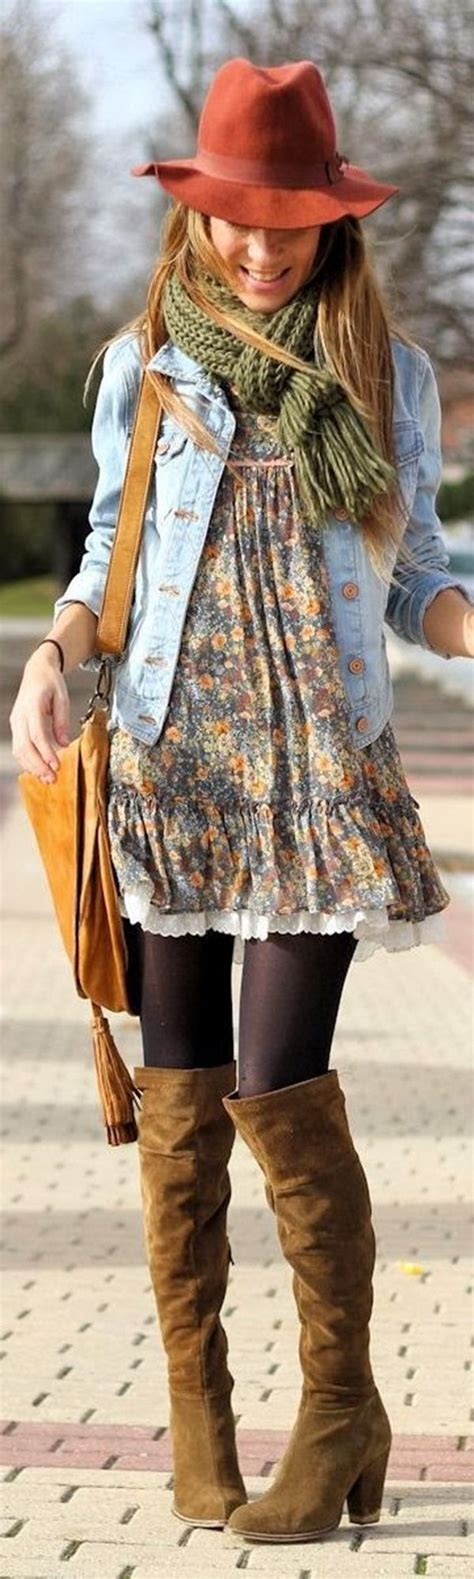 Bohemian Winter Style Dresses Collection for Stylish Girls u2013 Designers Outfits Collection